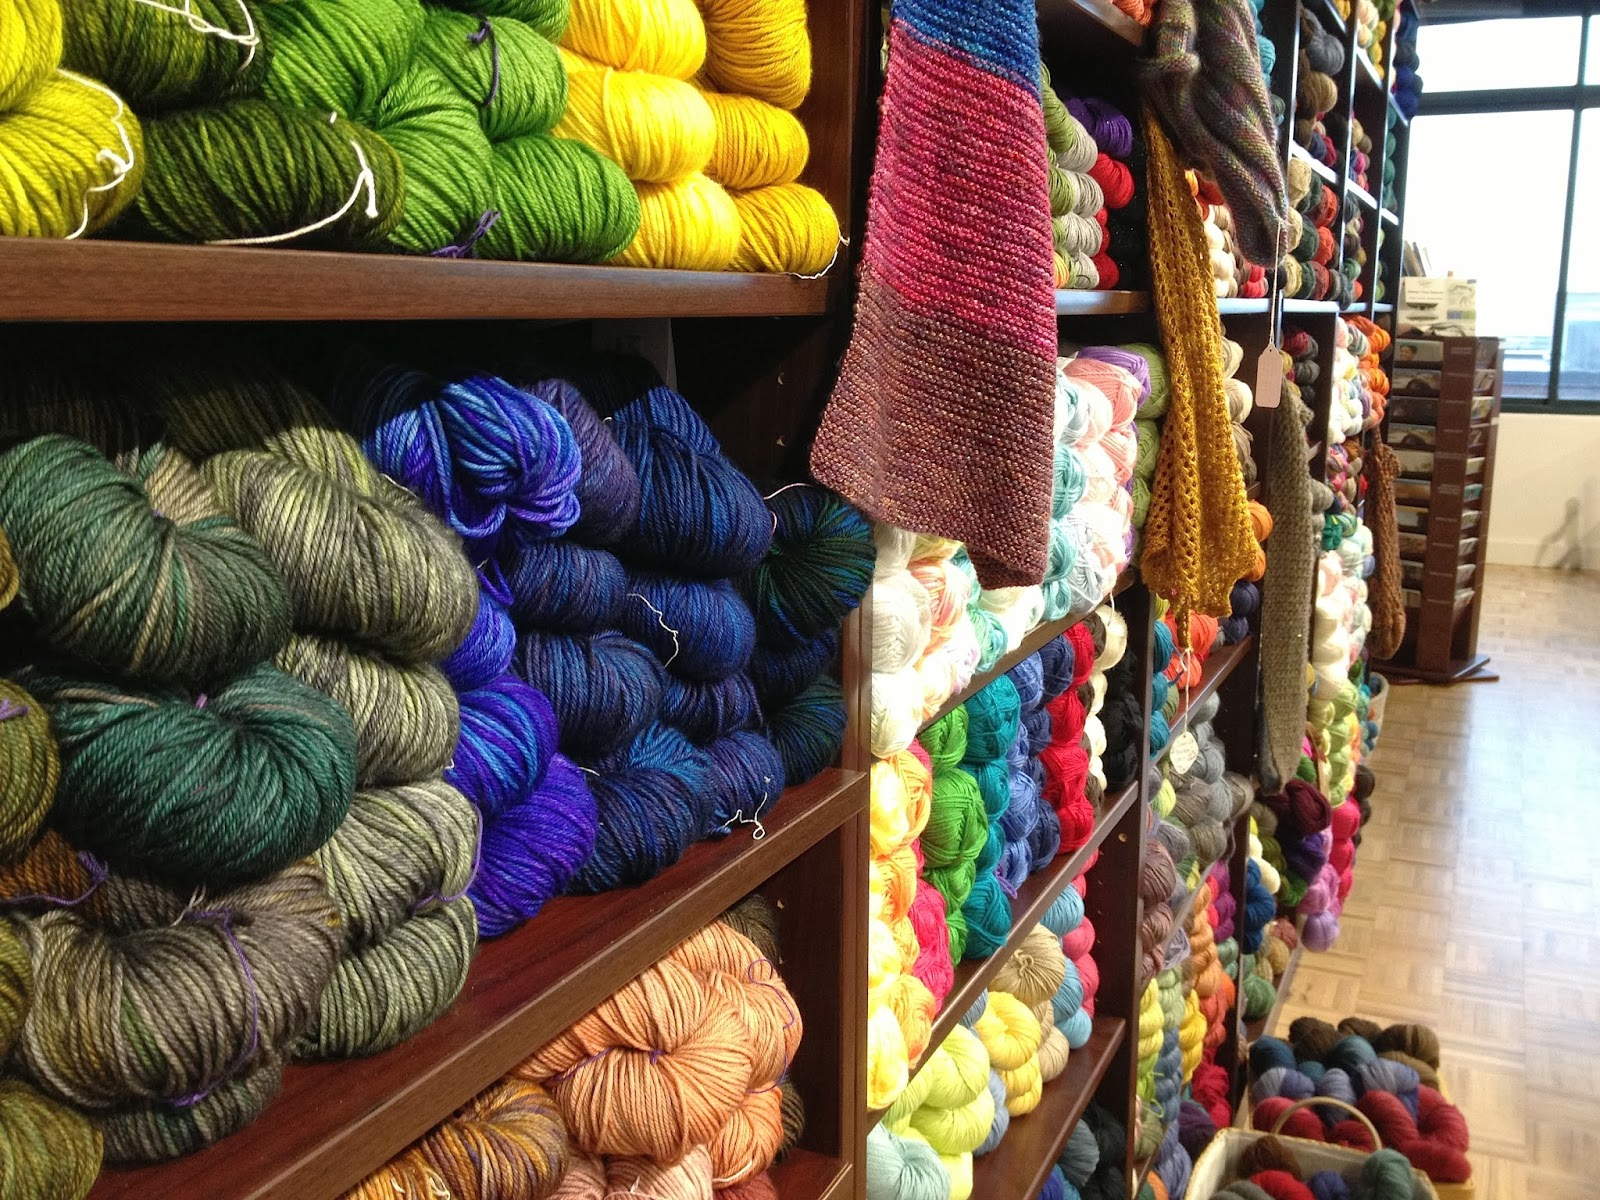 Illuminate Crochet: My Local Yarn Store